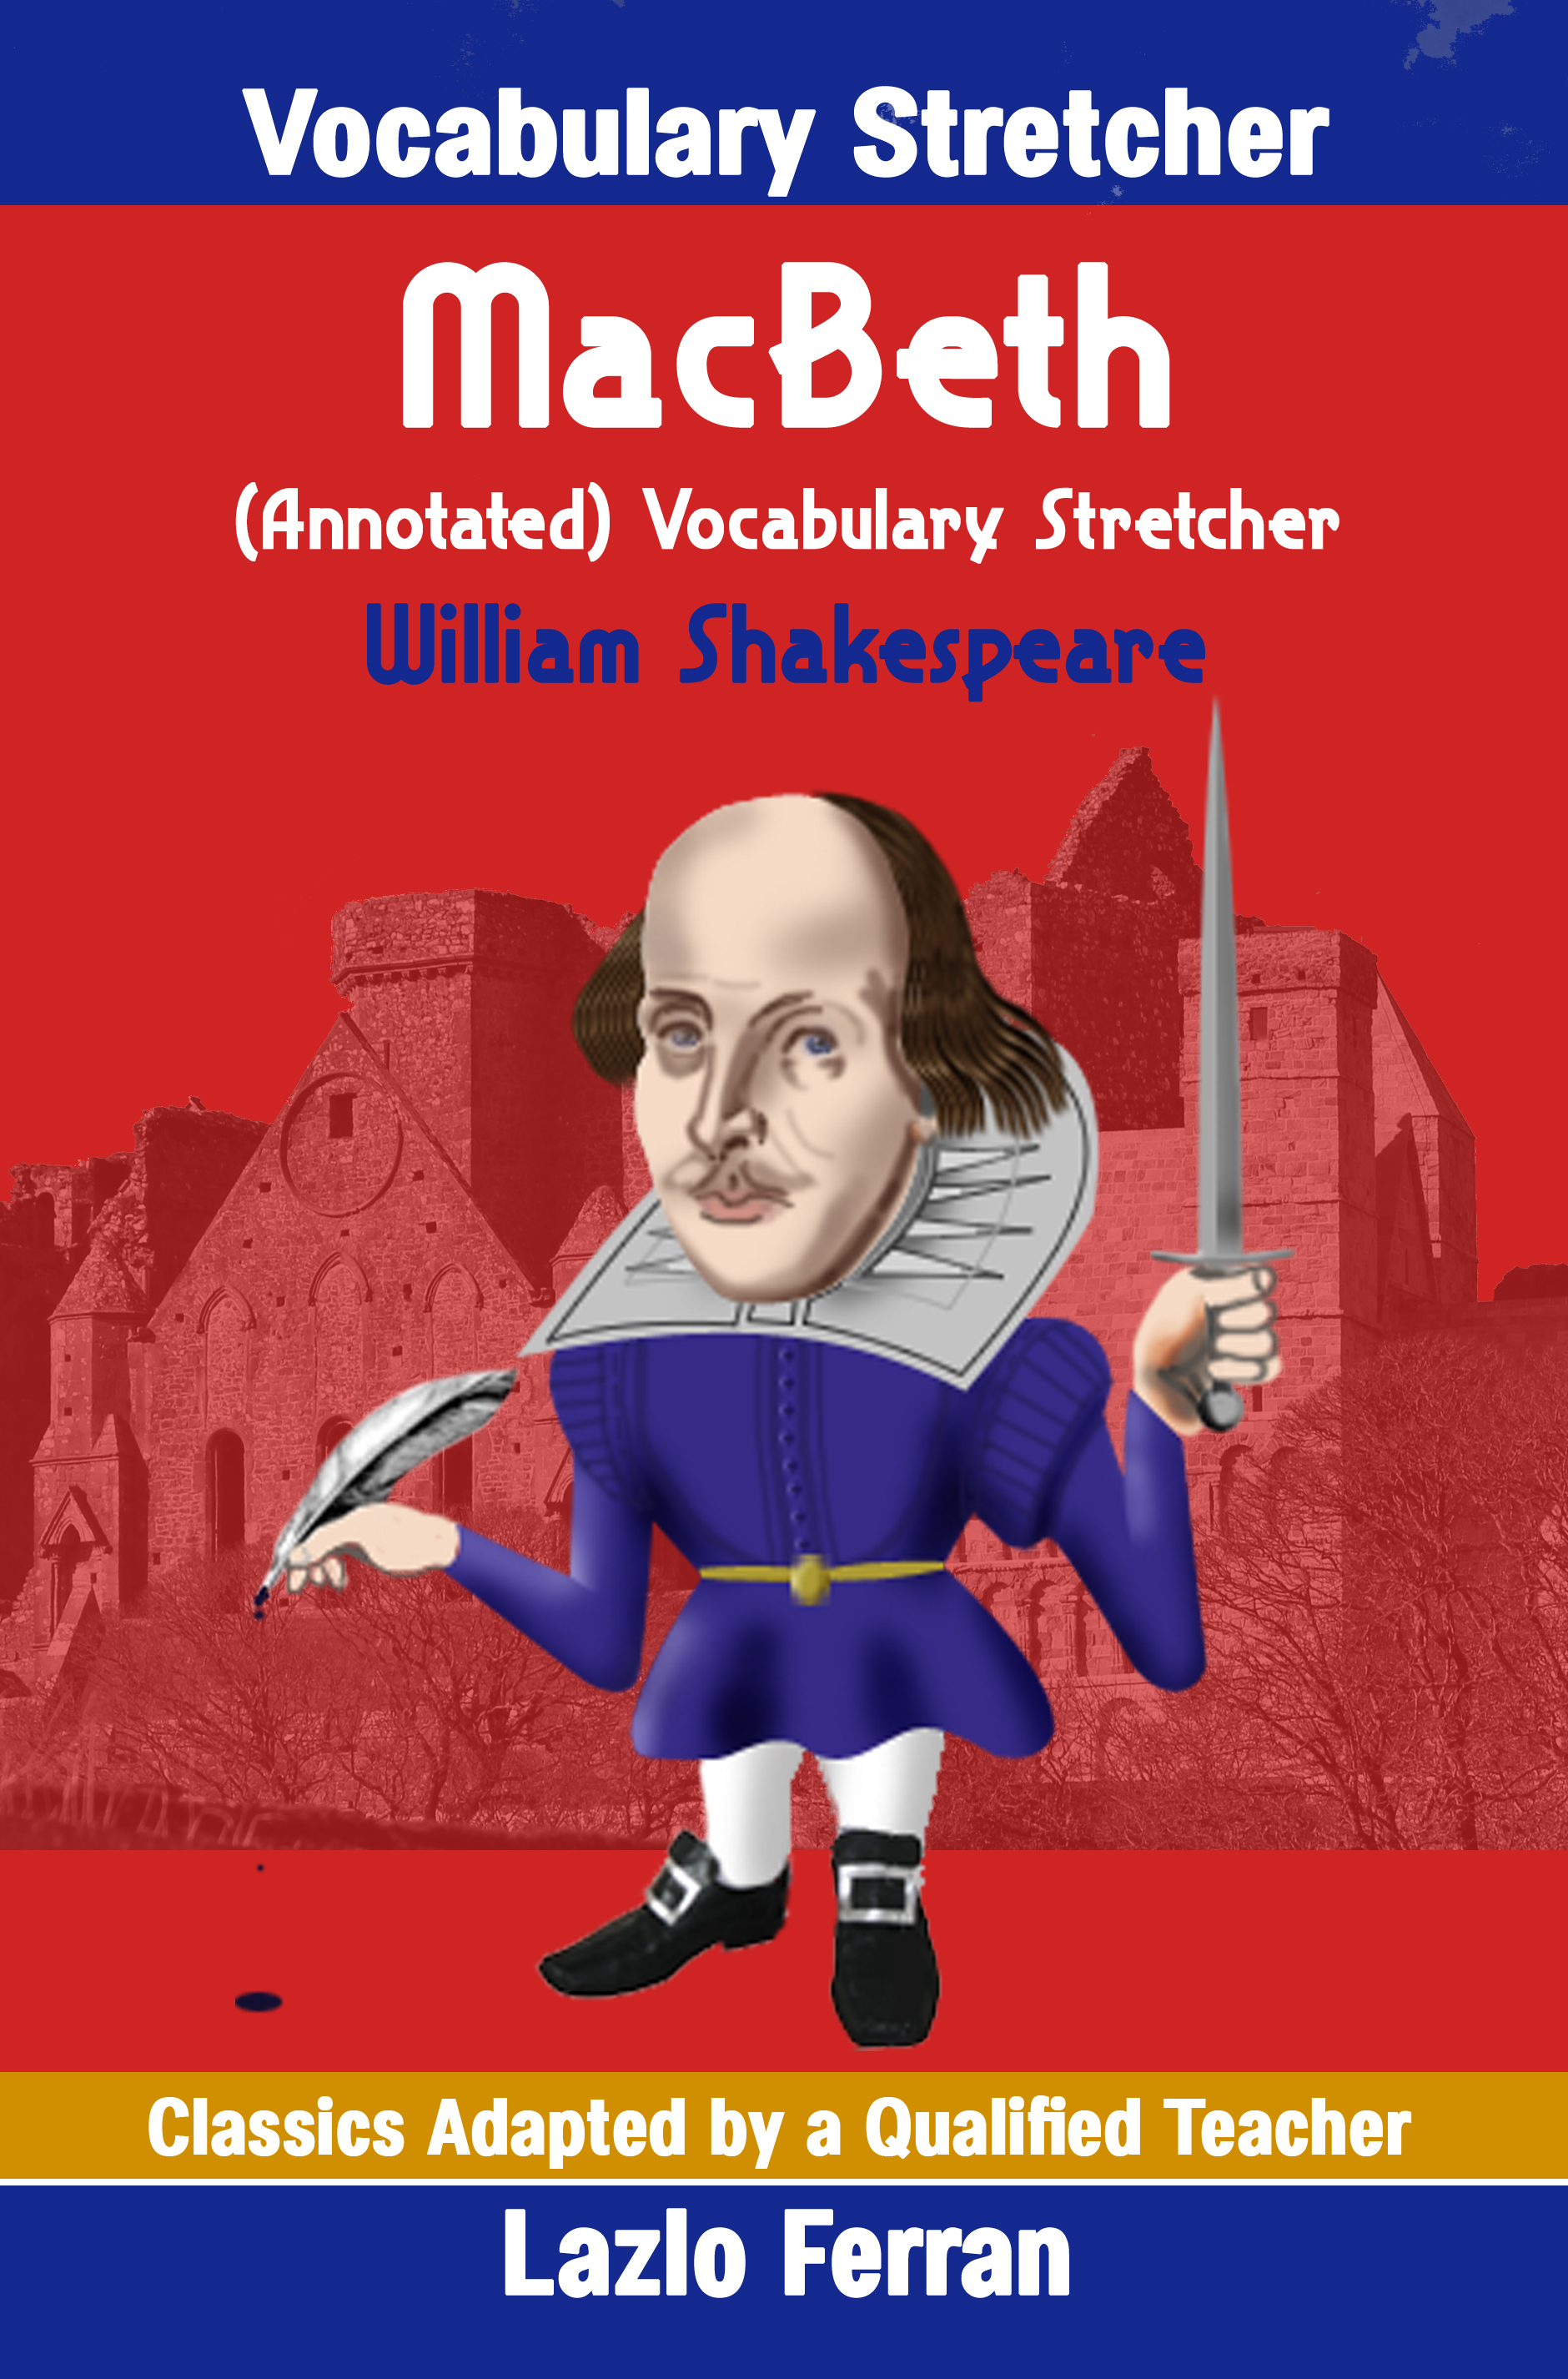 MacBeth - Vocabulary Stretcher